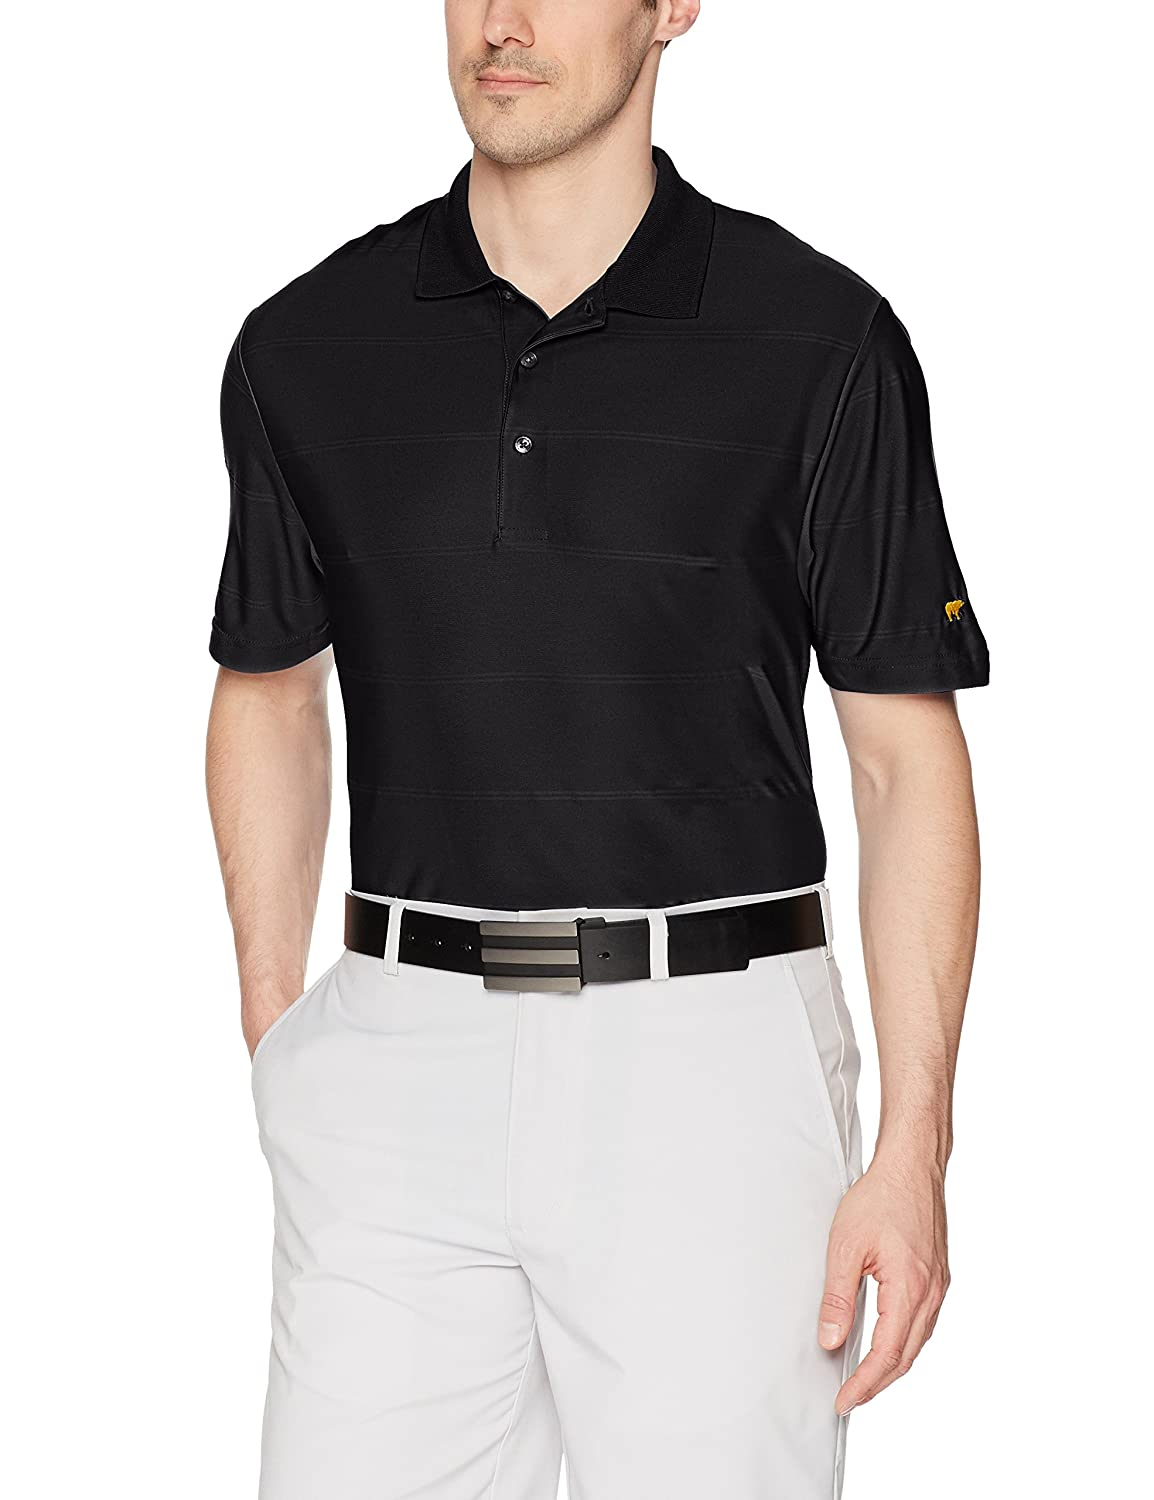 Jack Nicklaus Mens Ottoman Striped Short Sleeve Polo Shirt